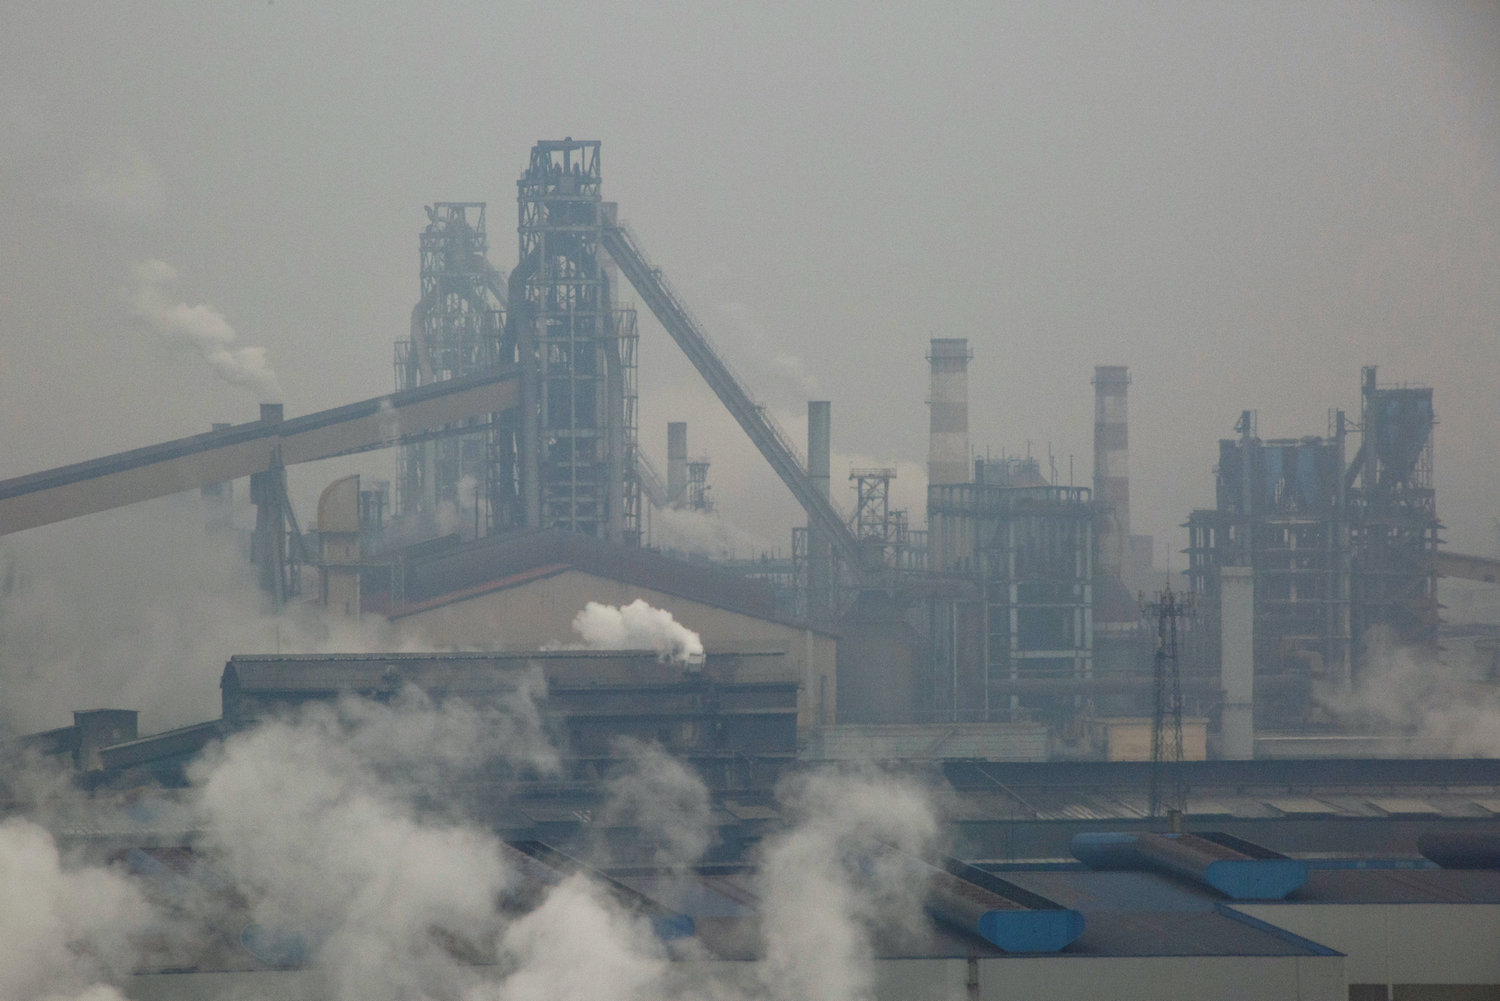 Smoke and steam rise from a steel plant in Anyang in Henan province of China. (Reuters File Photo)